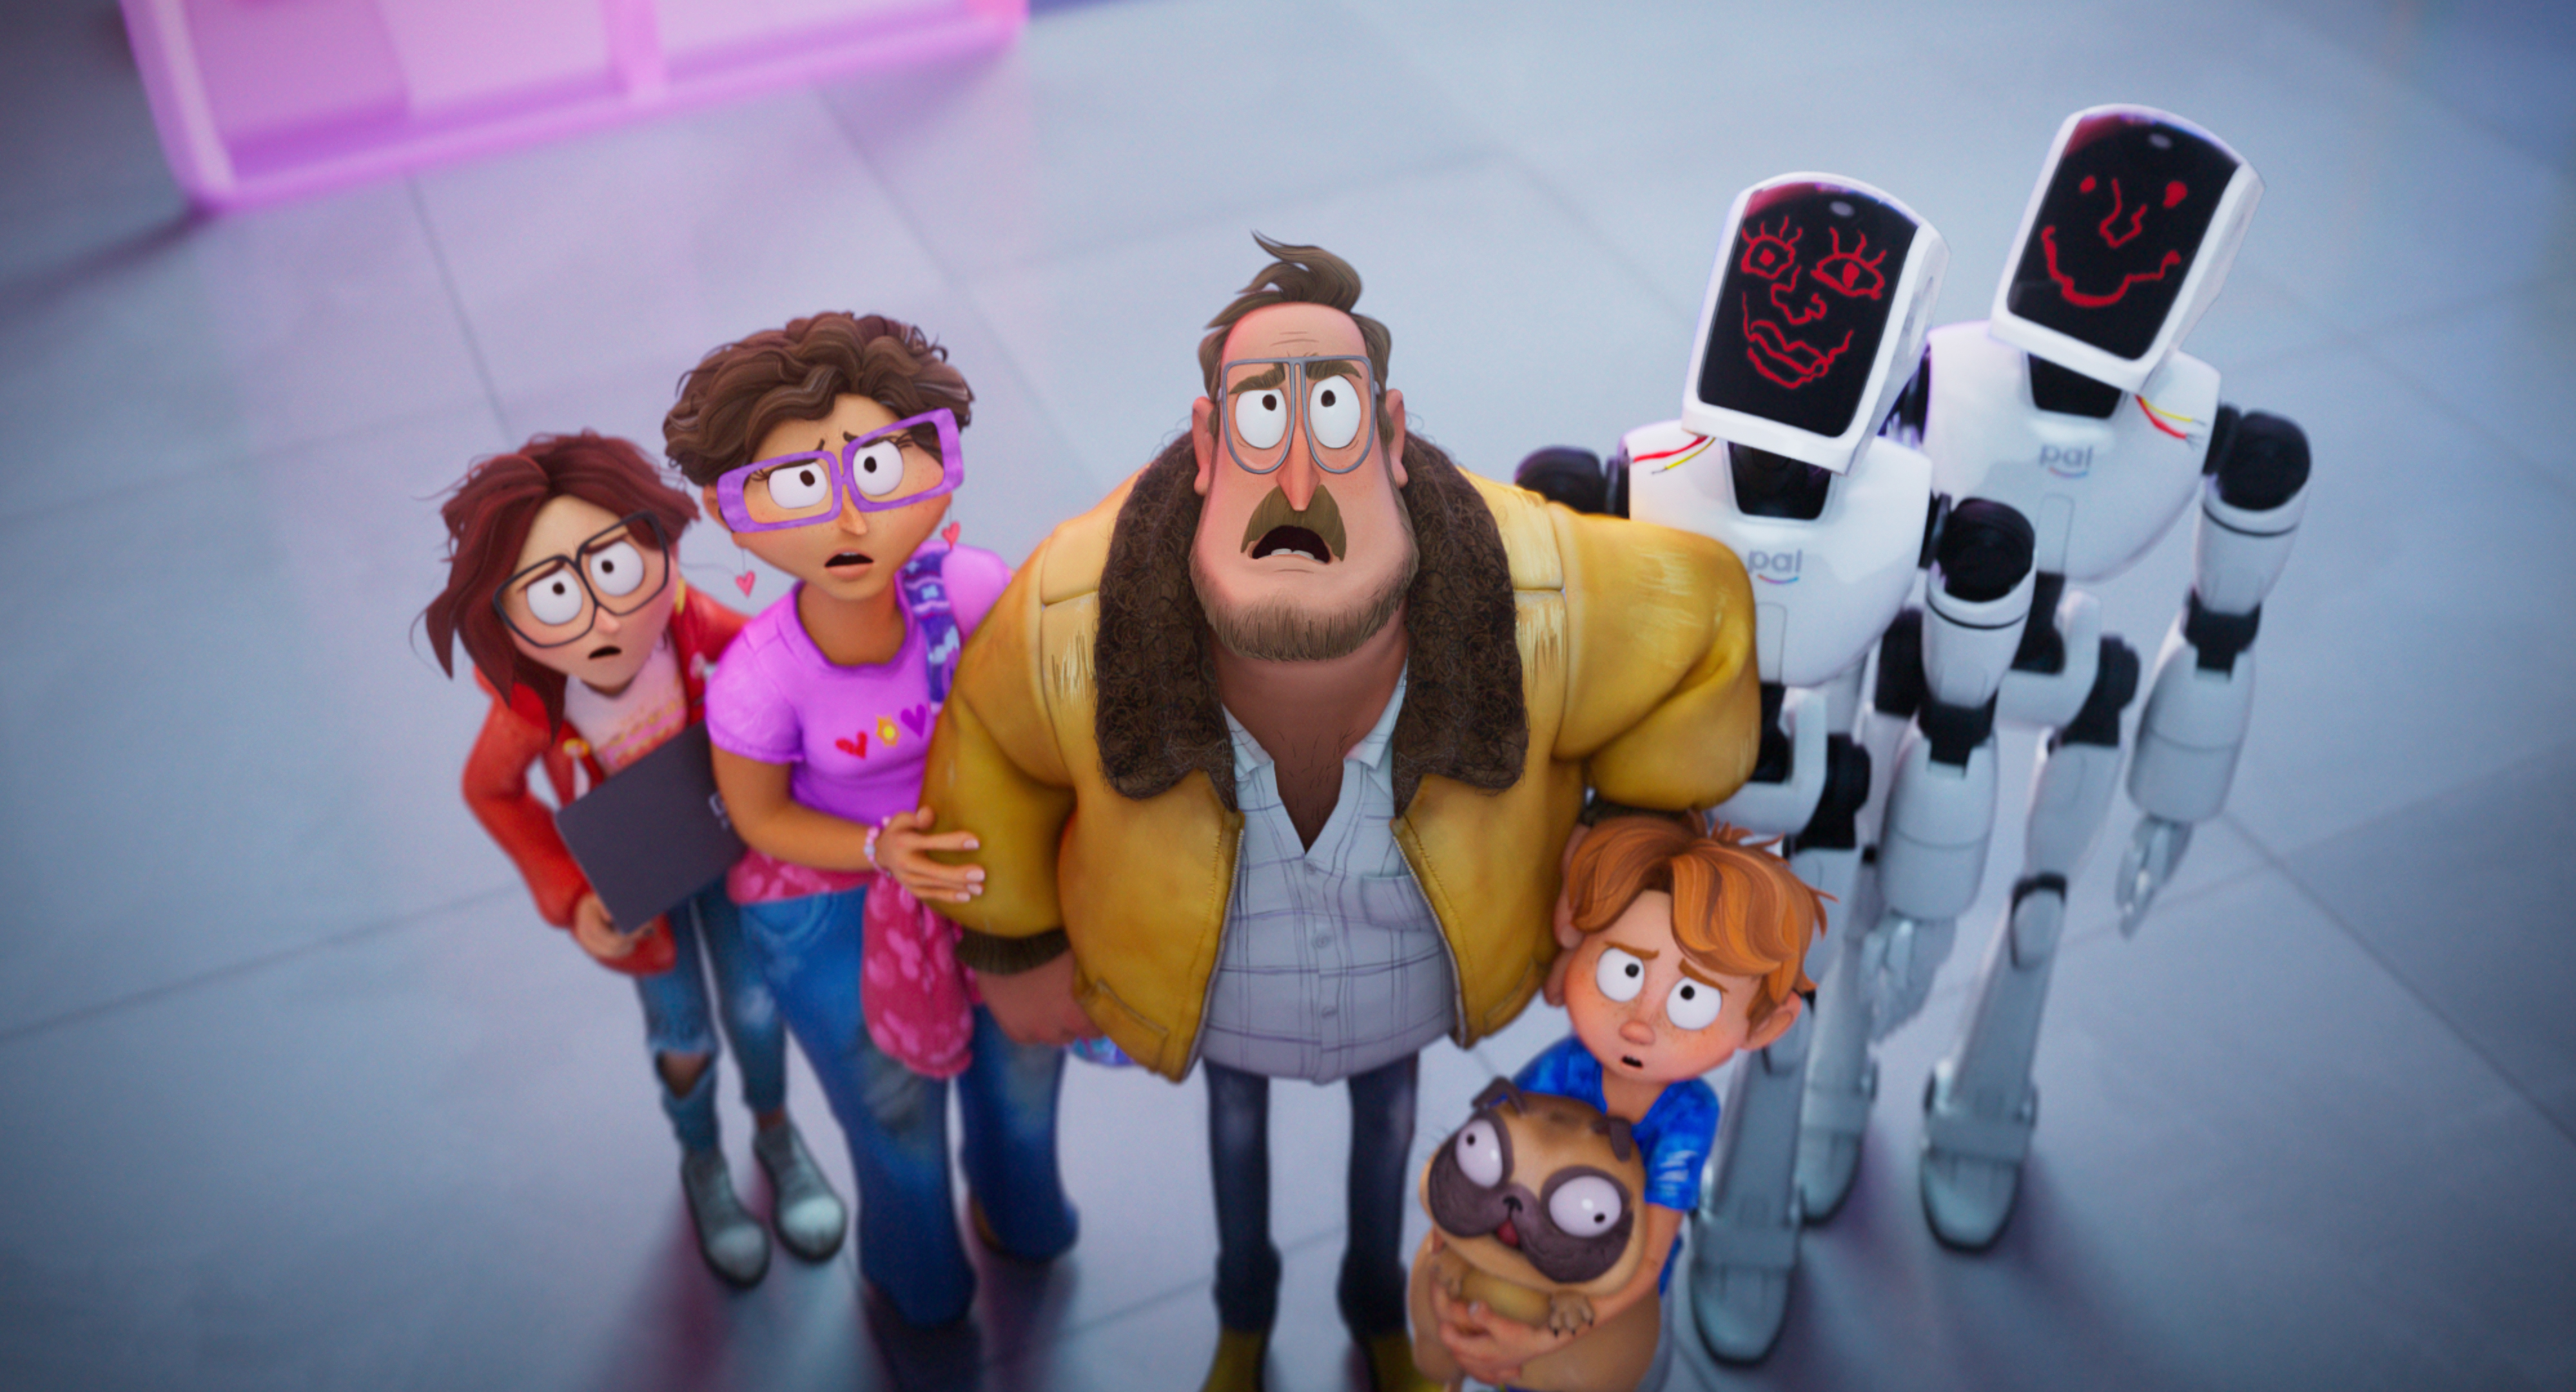 Netflix have released the official trailer for the upcoming animated sci-fi comedy The Mitchells vs. The Machines